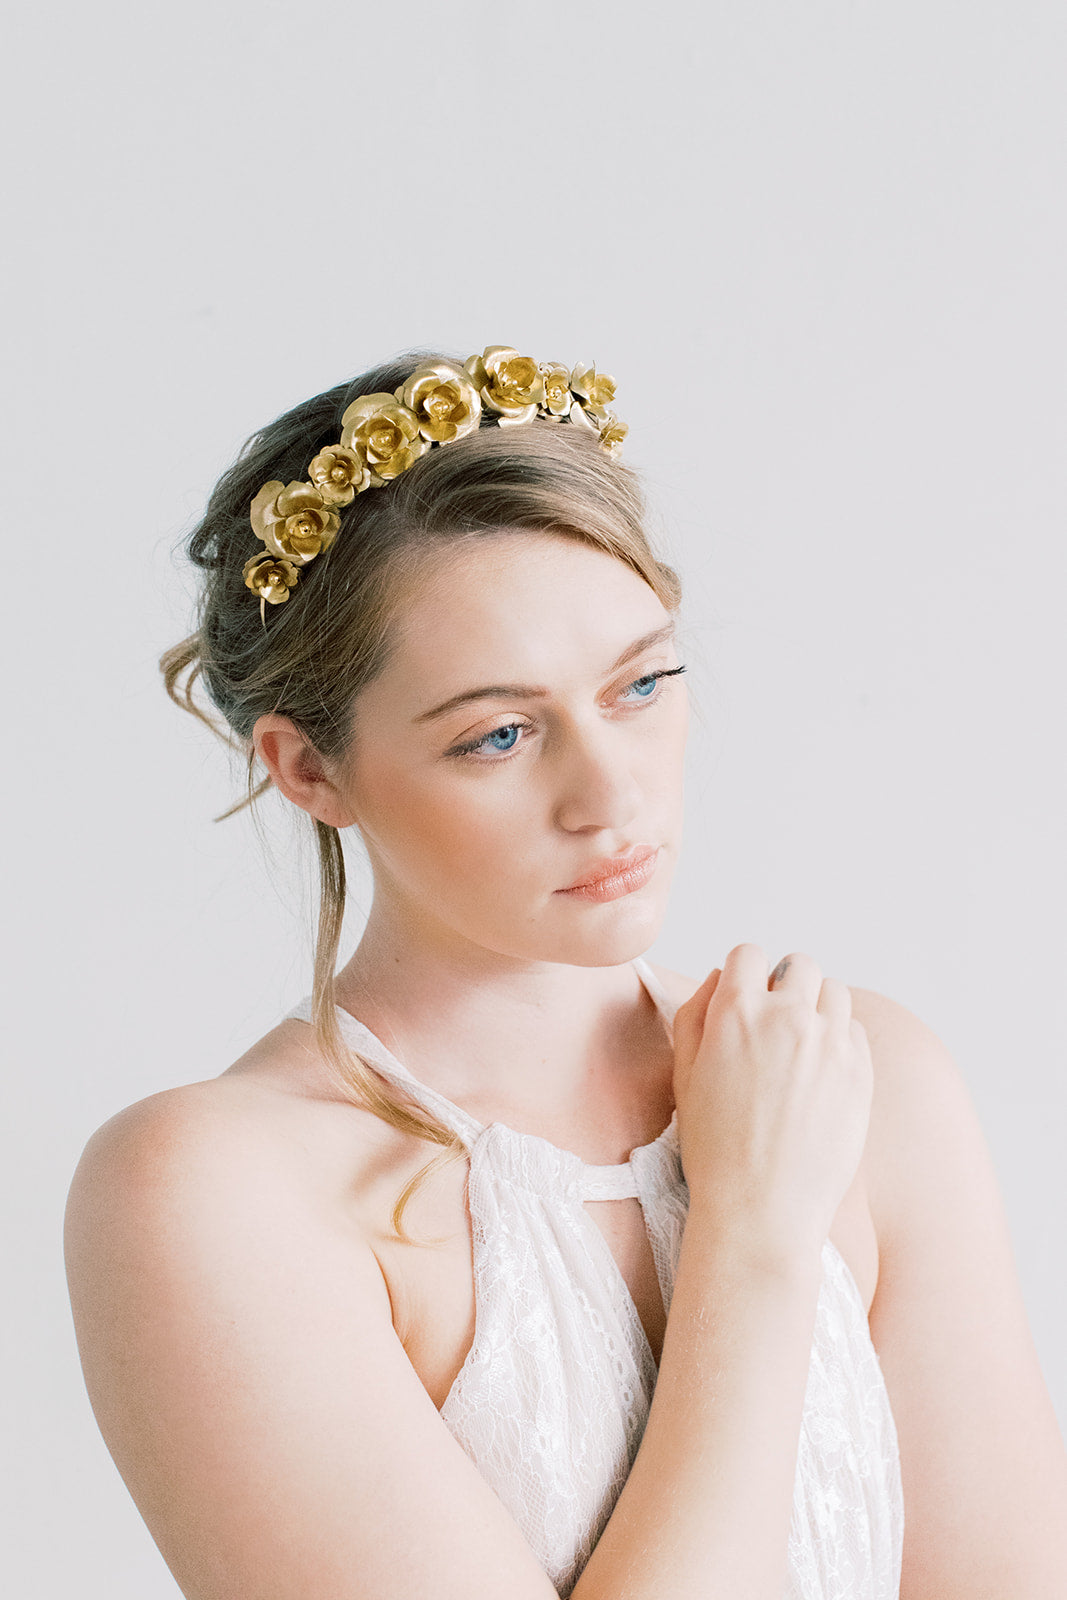 Rosebud Crown - Gold Flower Crown, Hairpiece, Bridal, Head Piece, Hair Accessories, tiara